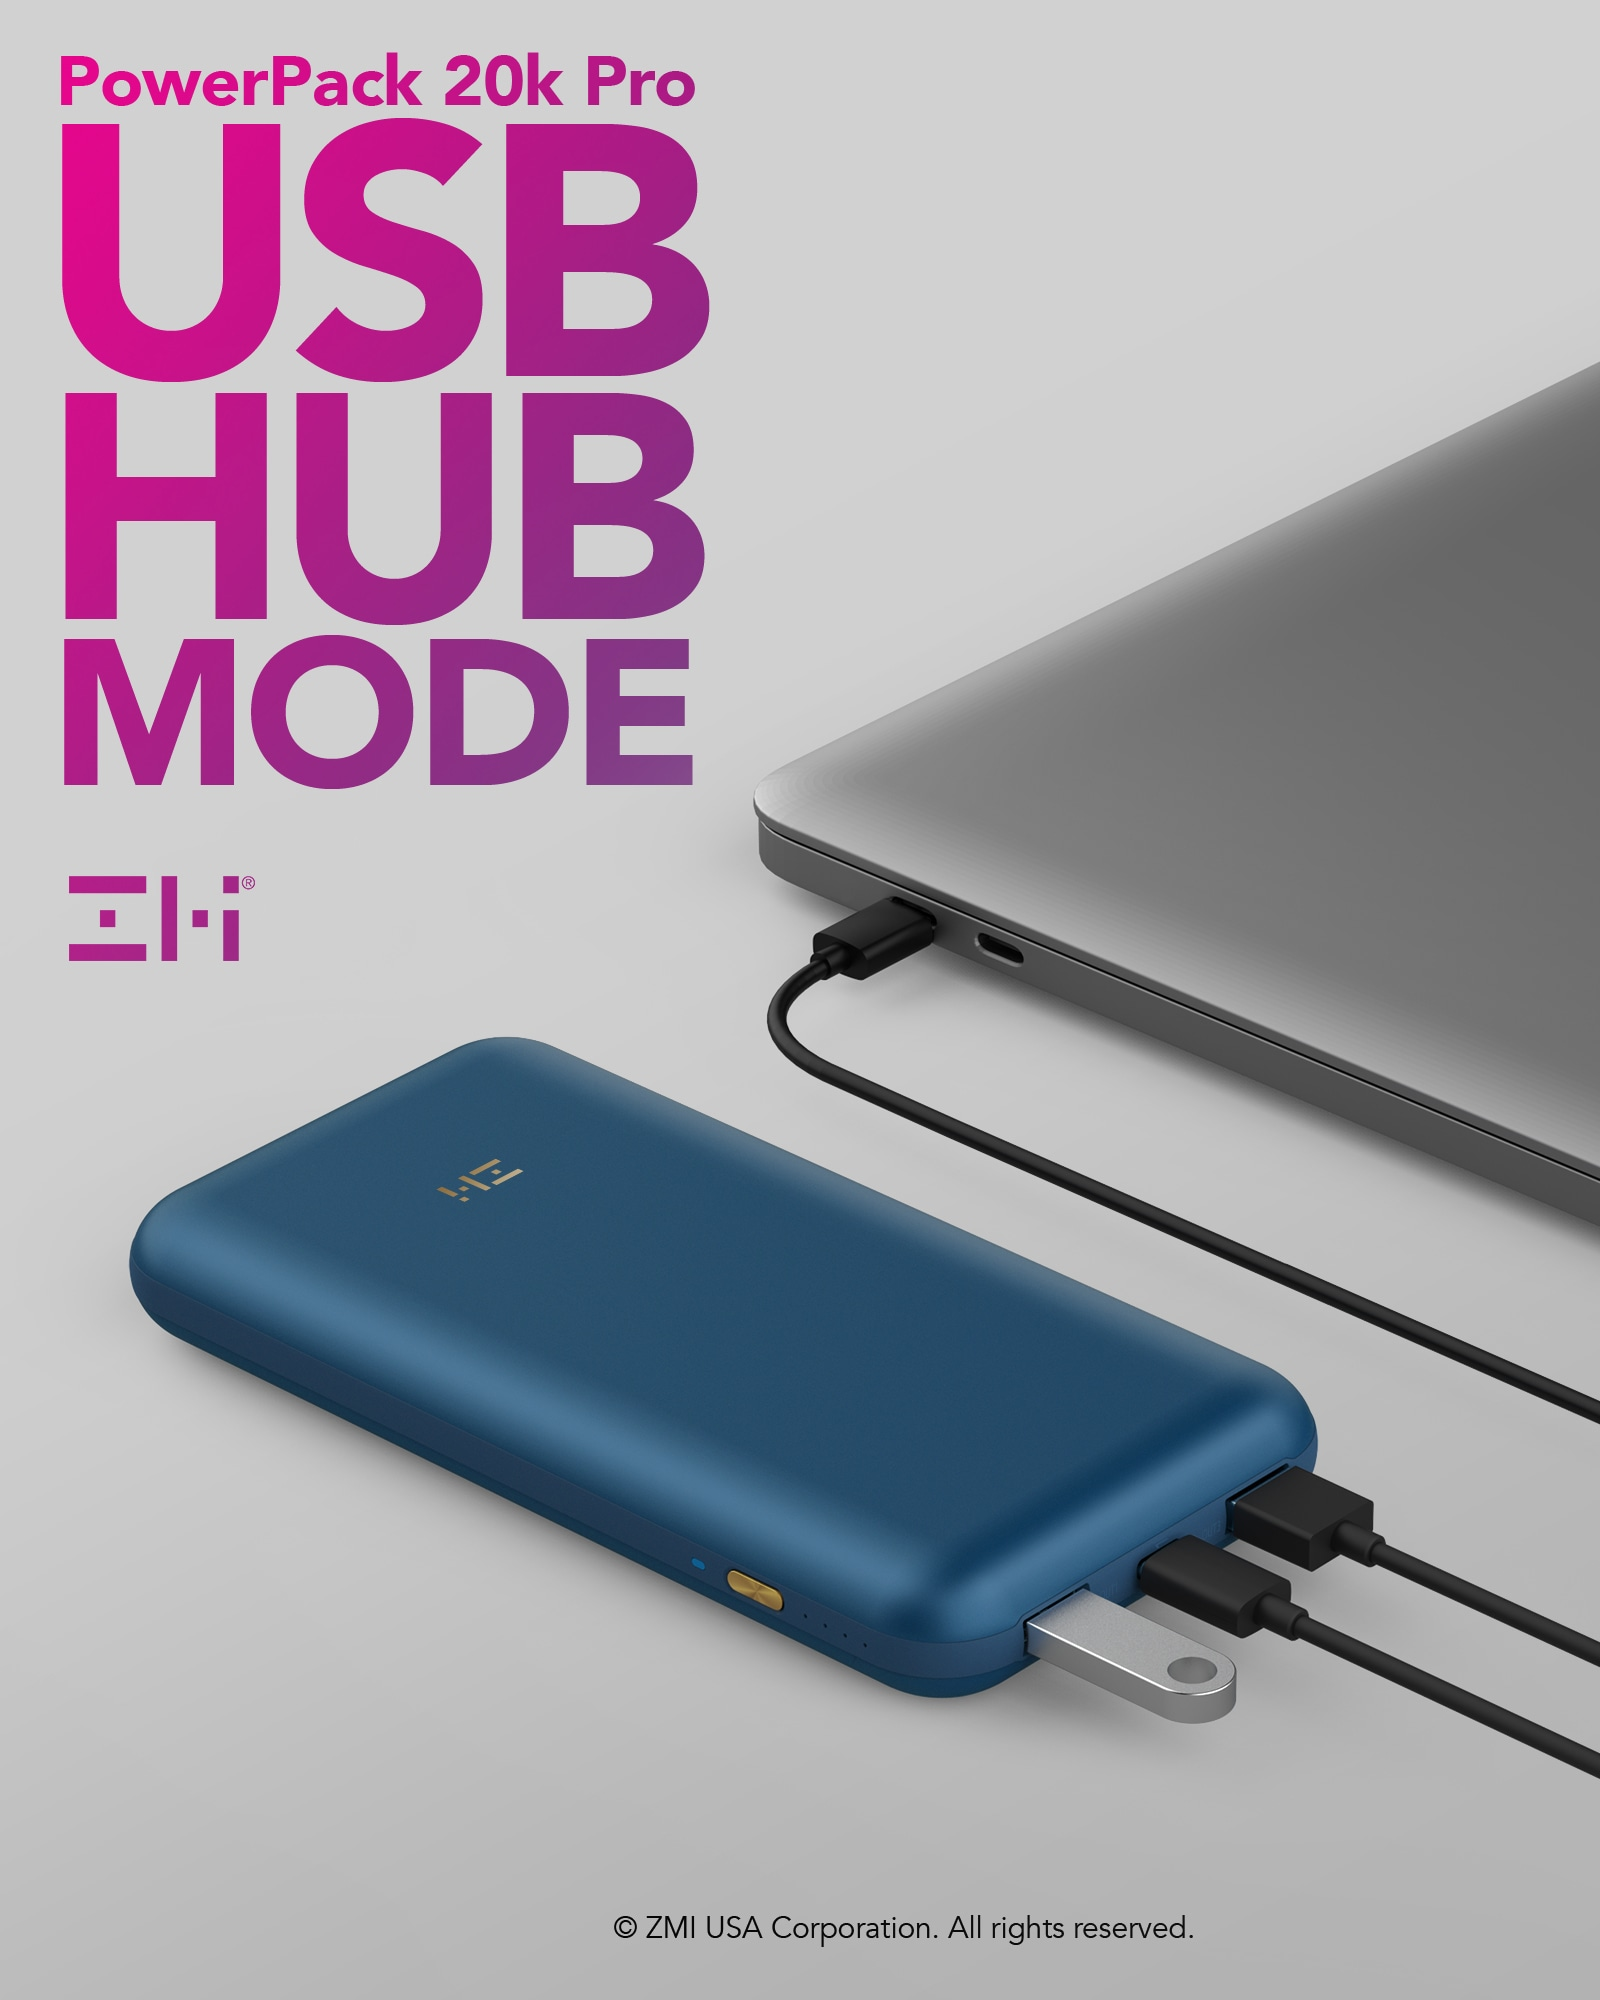 Two ZMI portable battery PowerPacks/USB hubs Giveaway Image